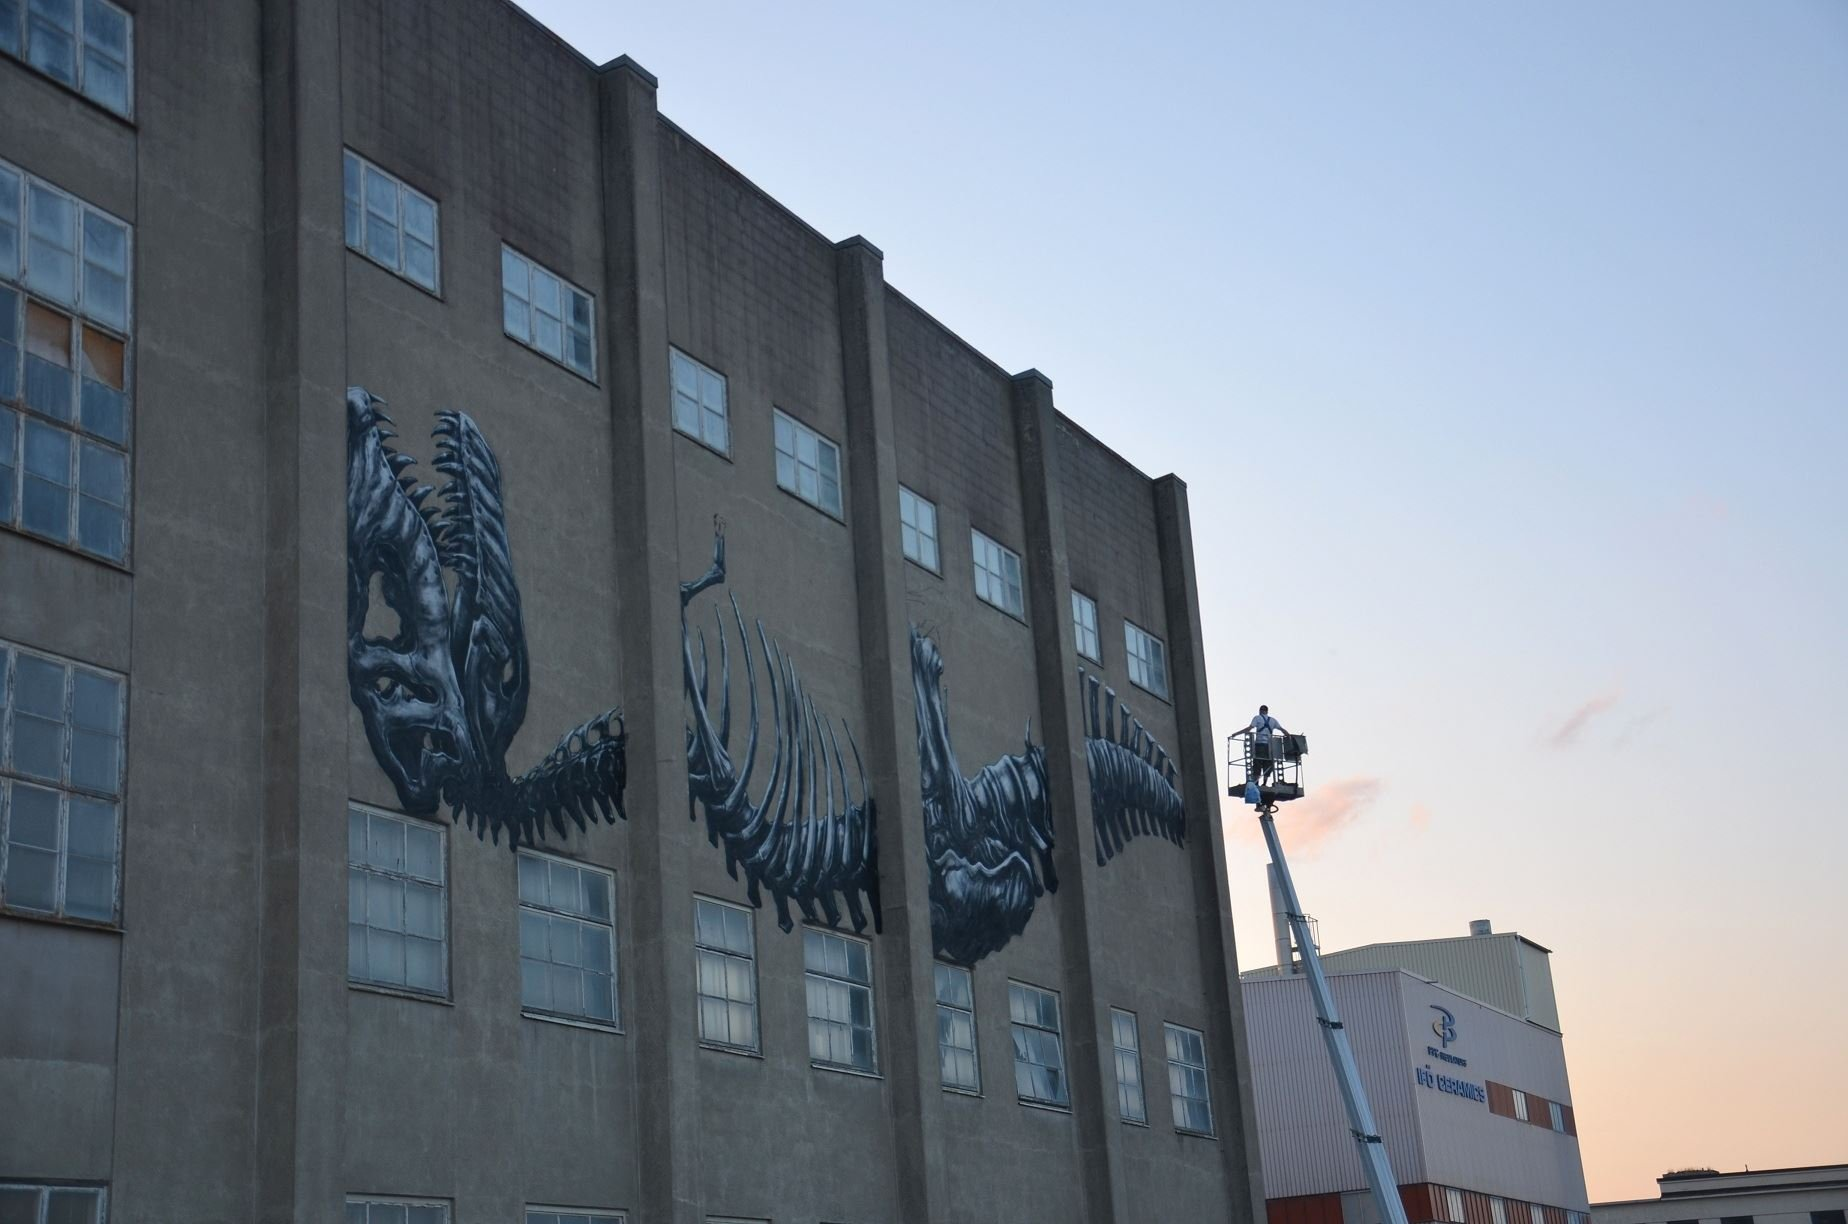 Christina Hedlund, Mural by street artist ROA